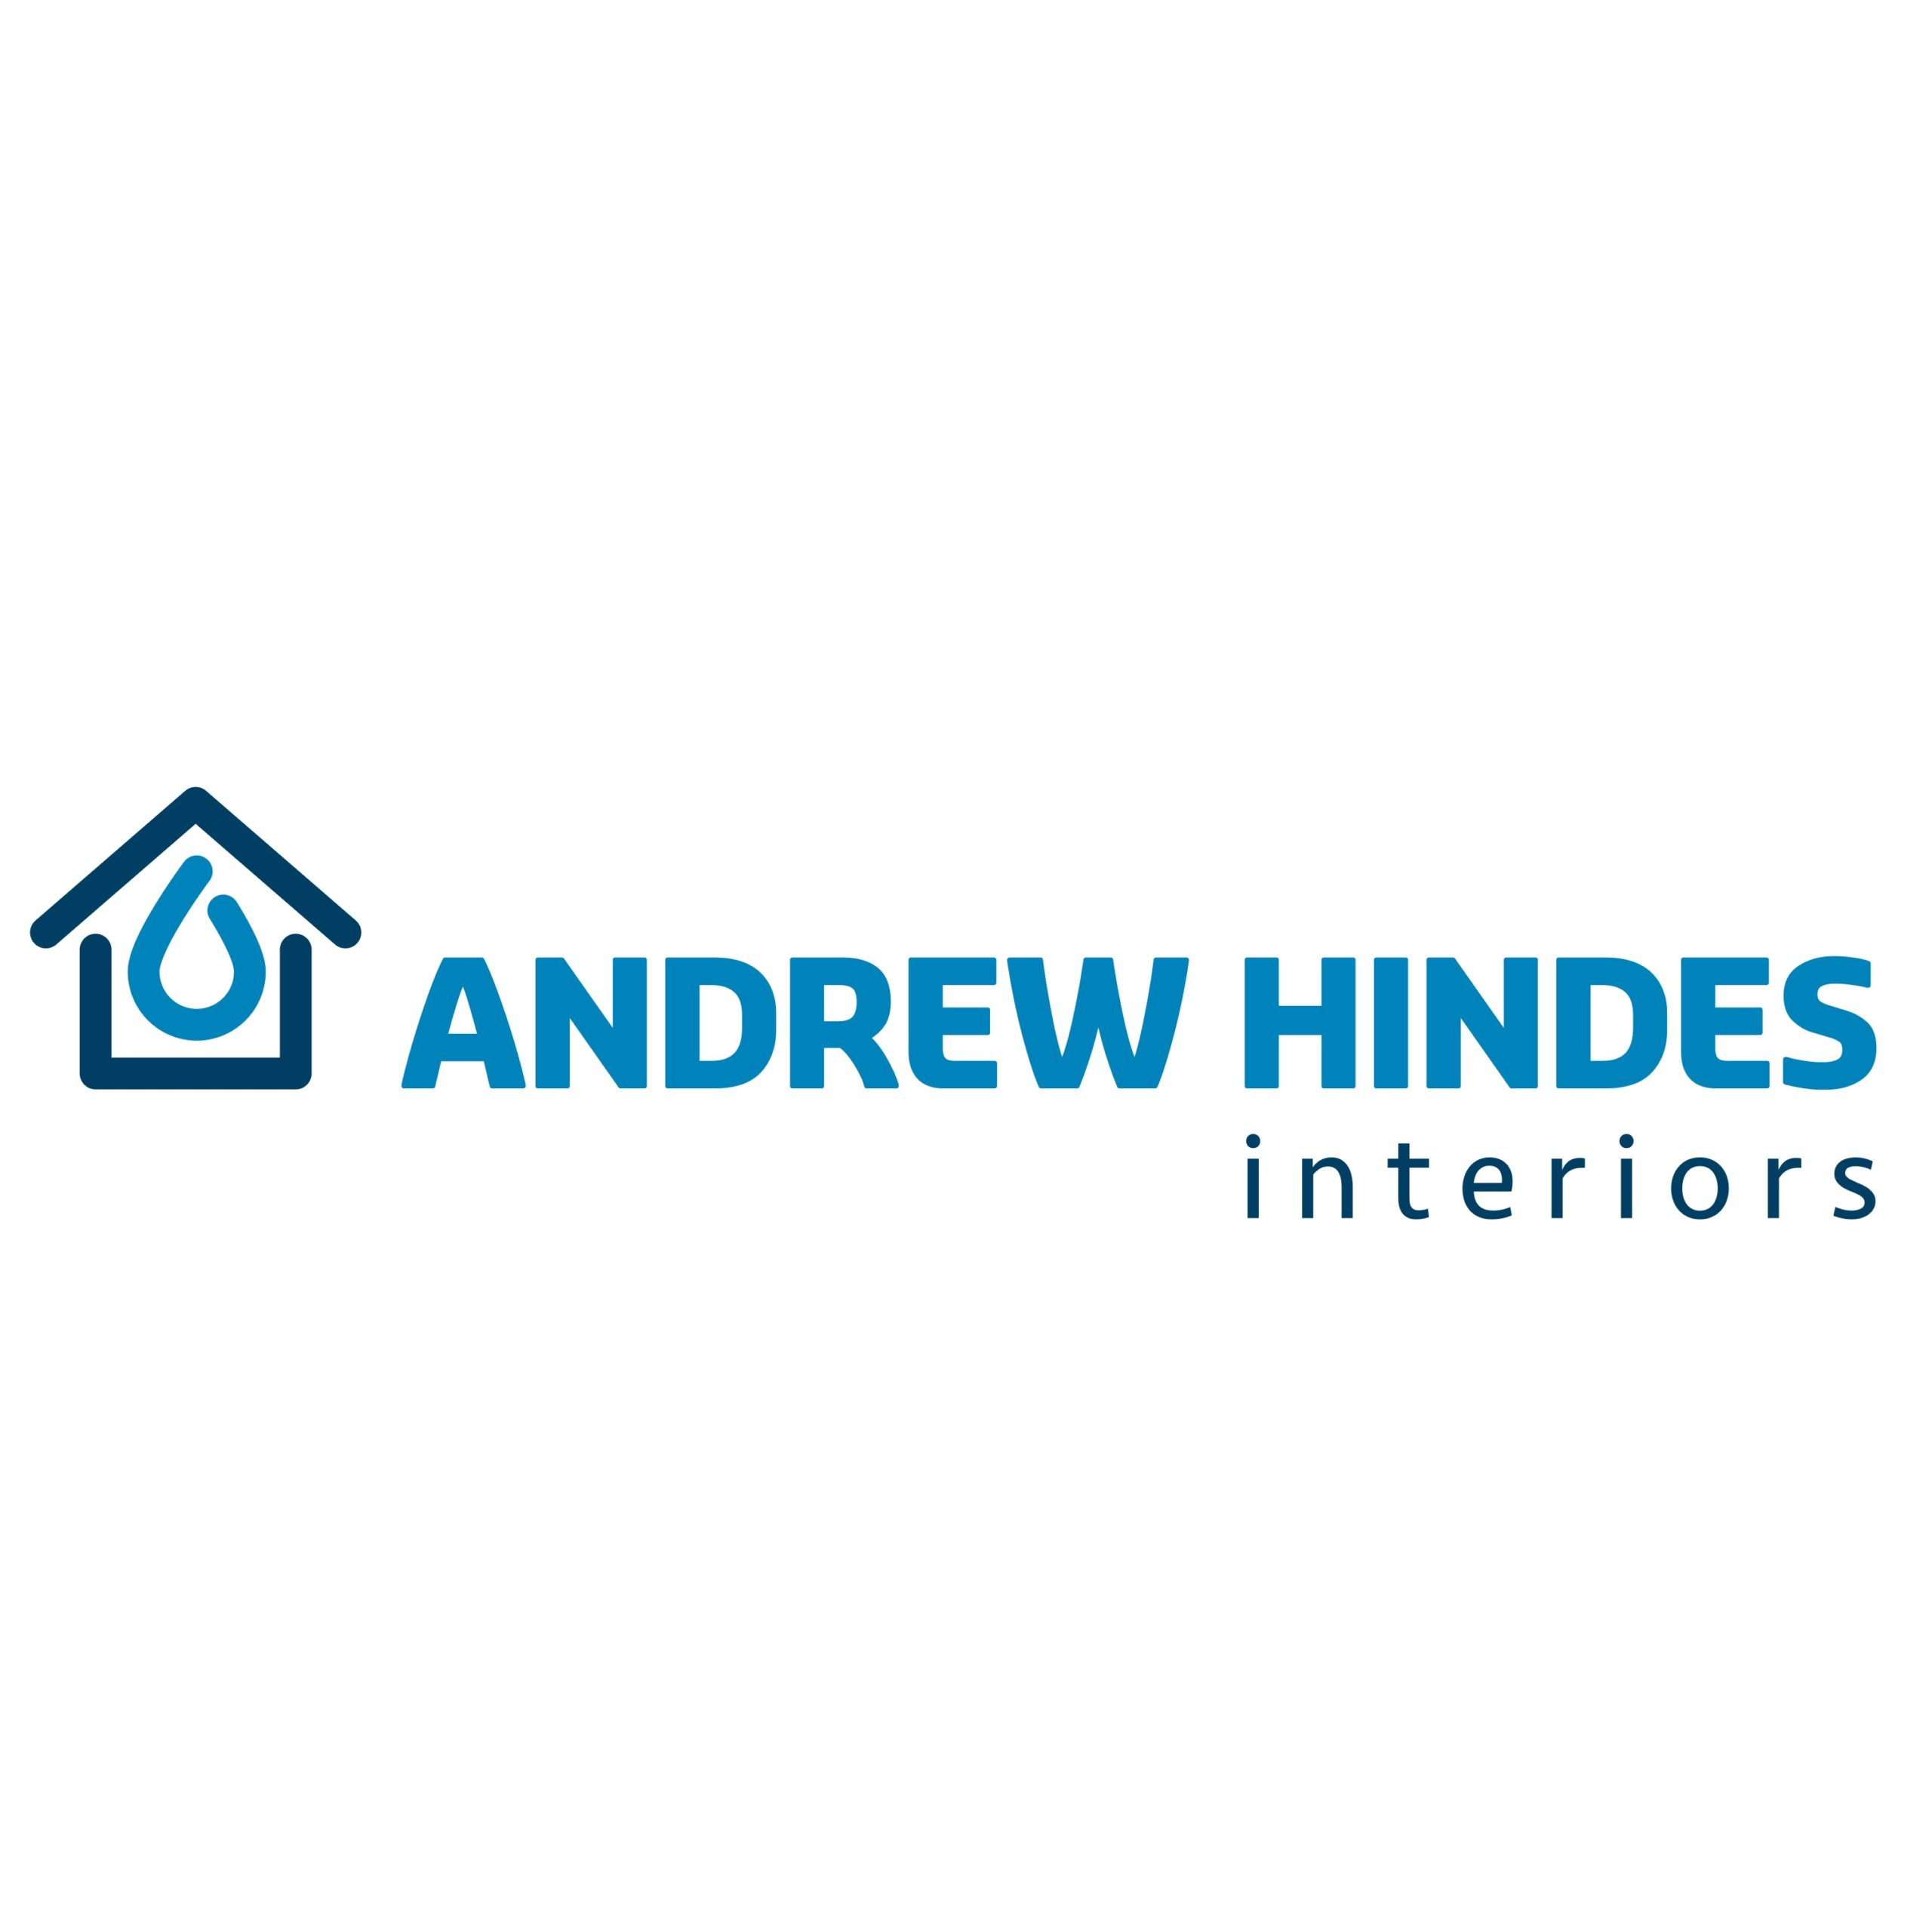 Andrew Hindes Interiors